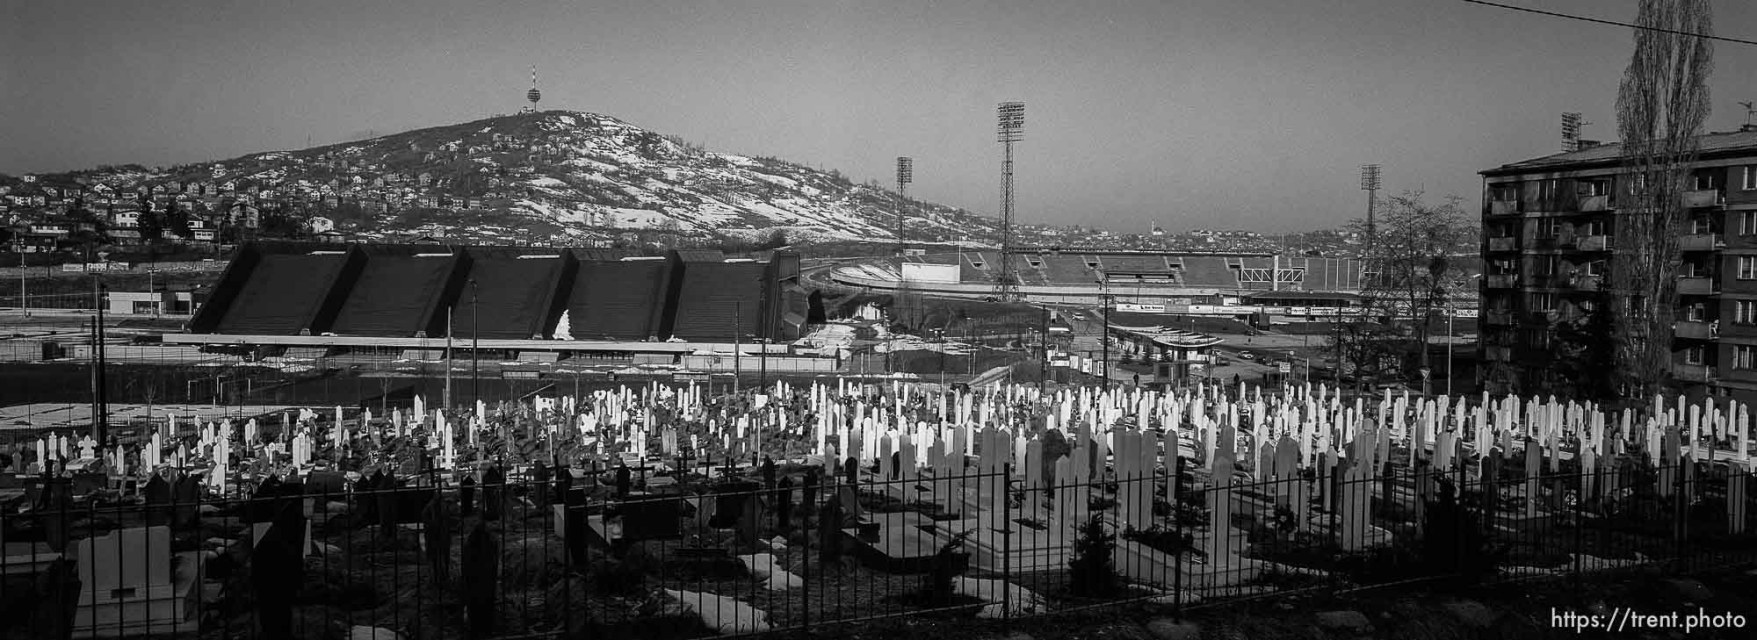 War-time cemetery at football pitch and the Zetra Olympic venue and stadium.